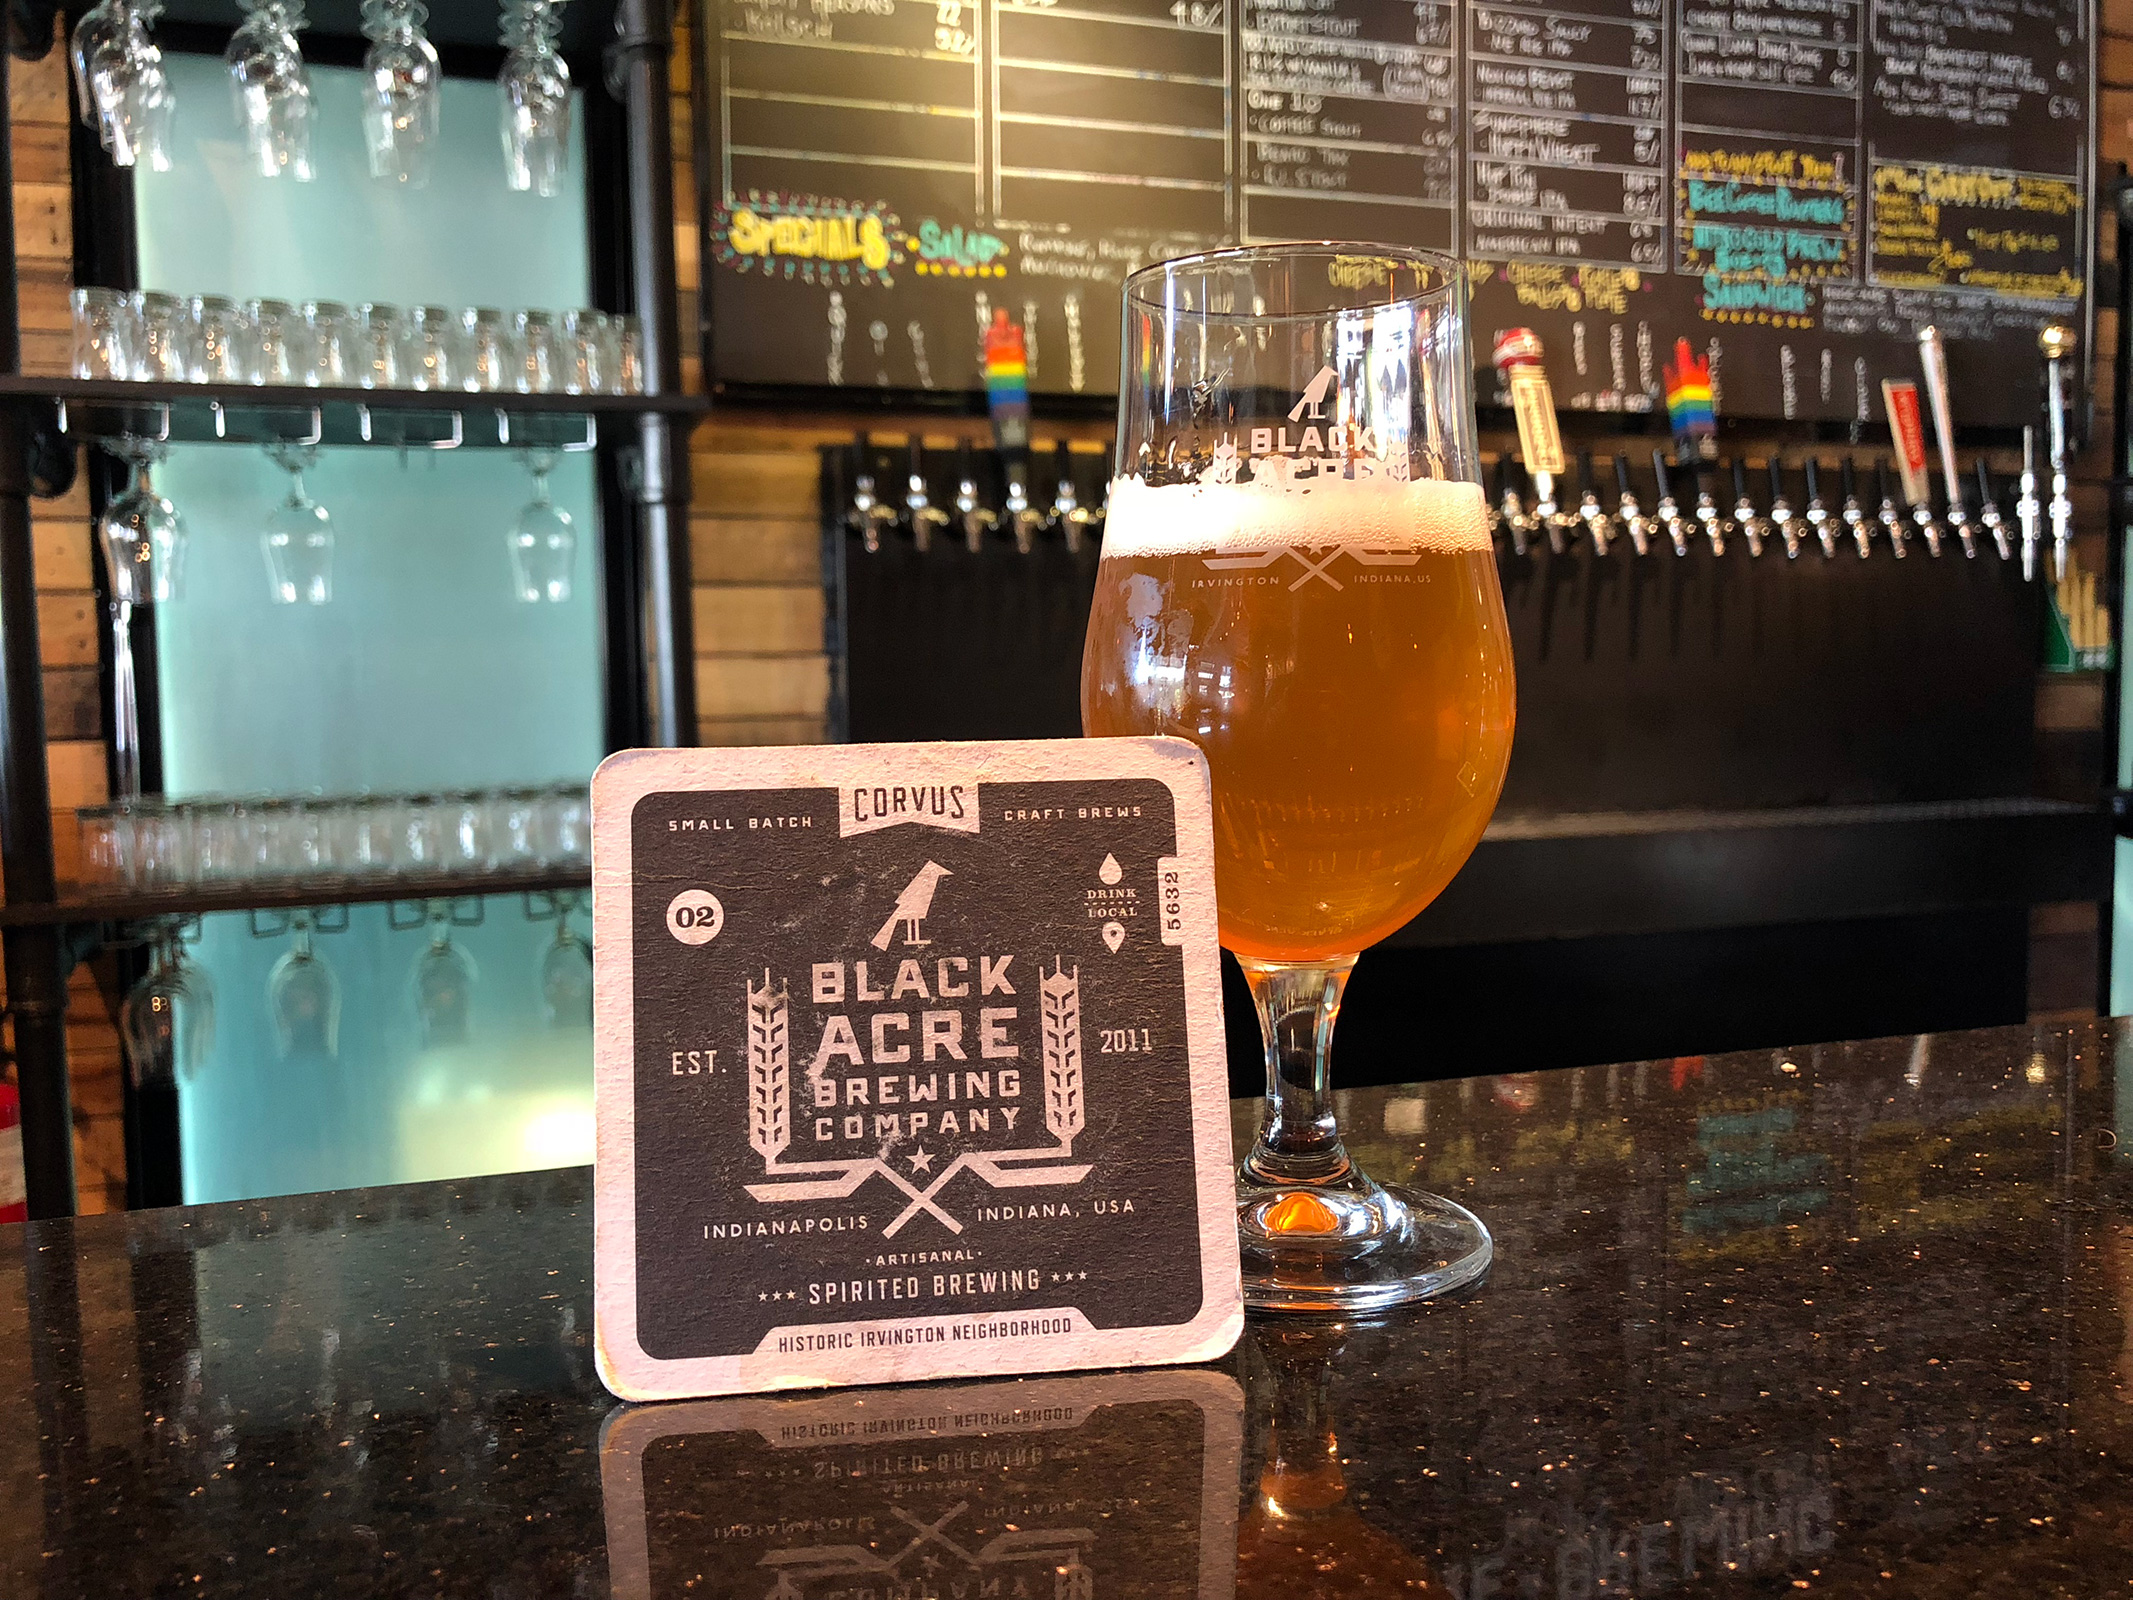 Black Acre Brewing Co. in Indianapolis, IN by Jets Like Taxis / Hopsmash